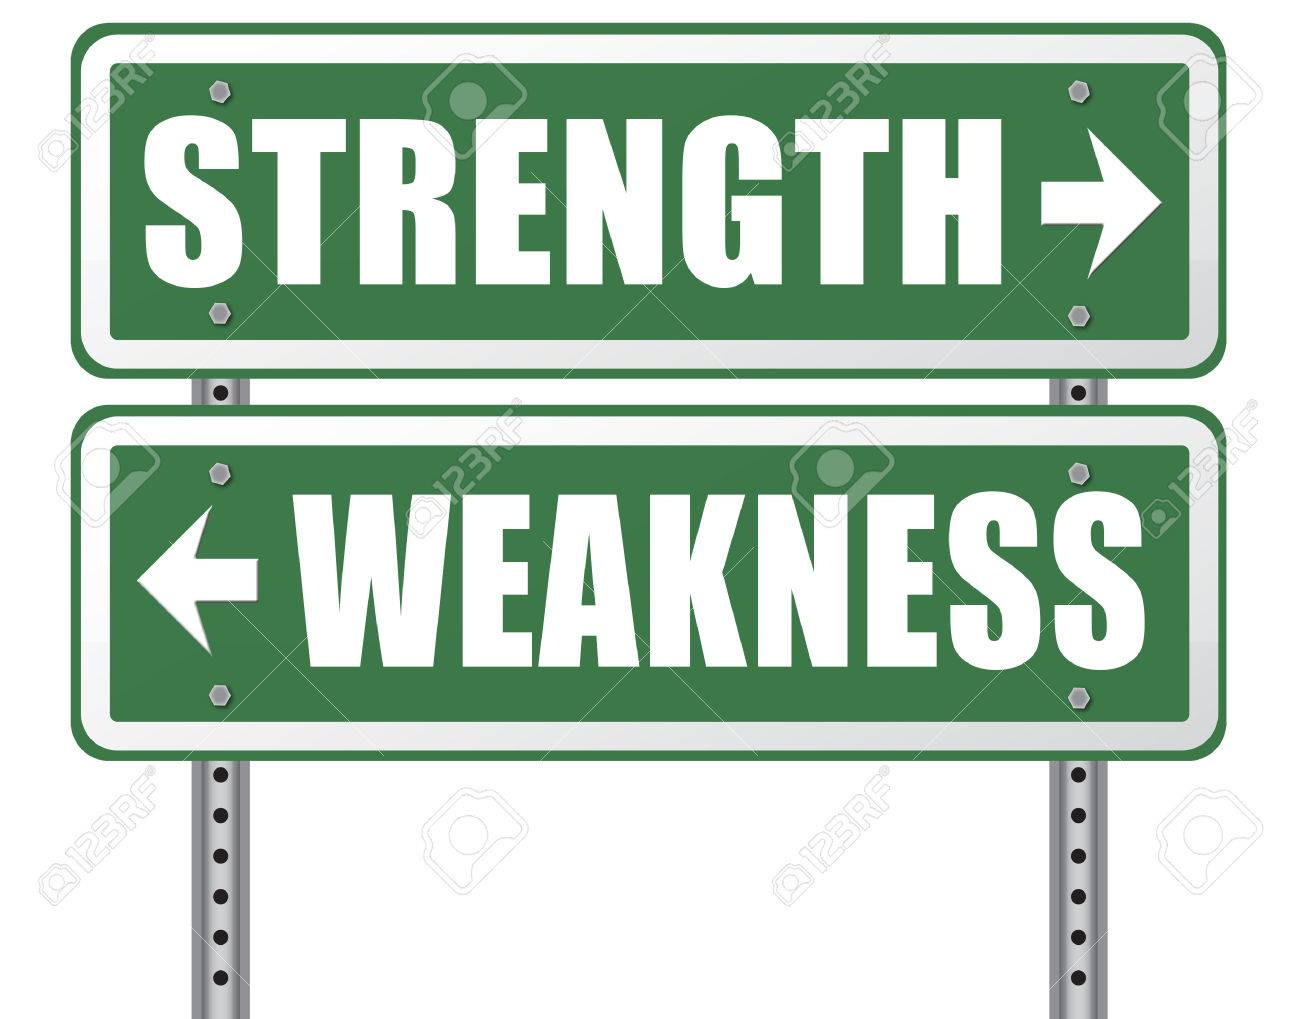 strength or weakness being strong or weak overcome problems accept stock photo strength or weakness being strong or weak overcome problems accept the challenge to success